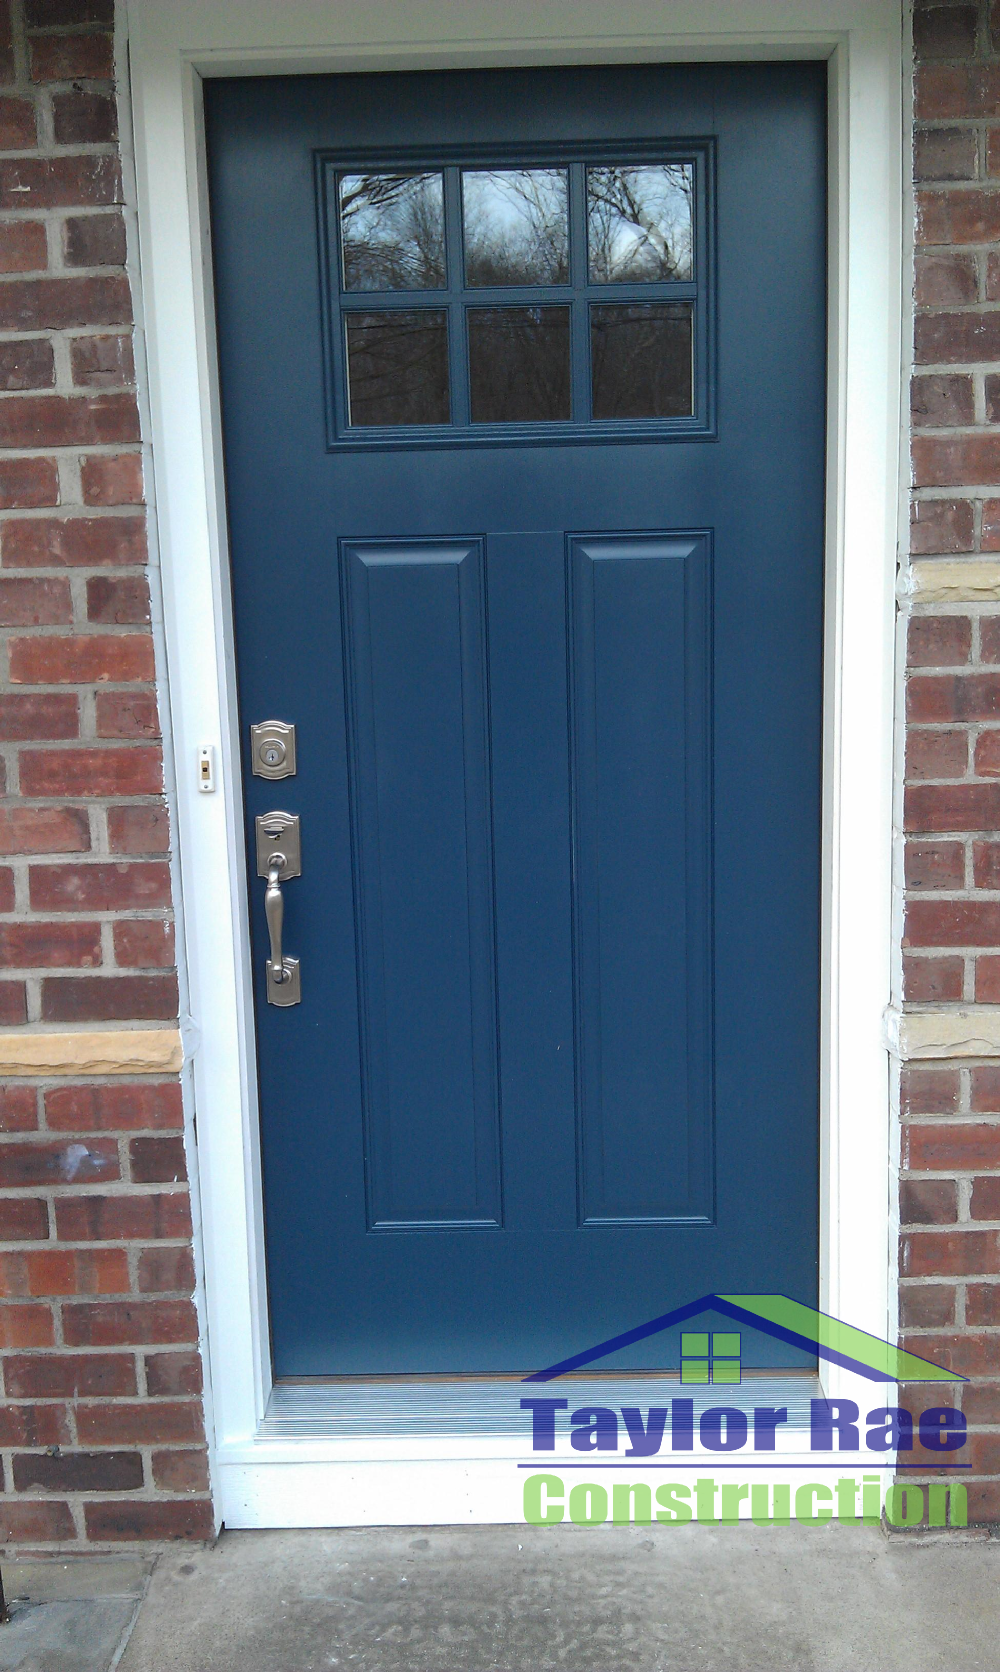 Decorating fiberglass entry doors Simple but effective update to curb appeal. Blue fiberglass entry ...